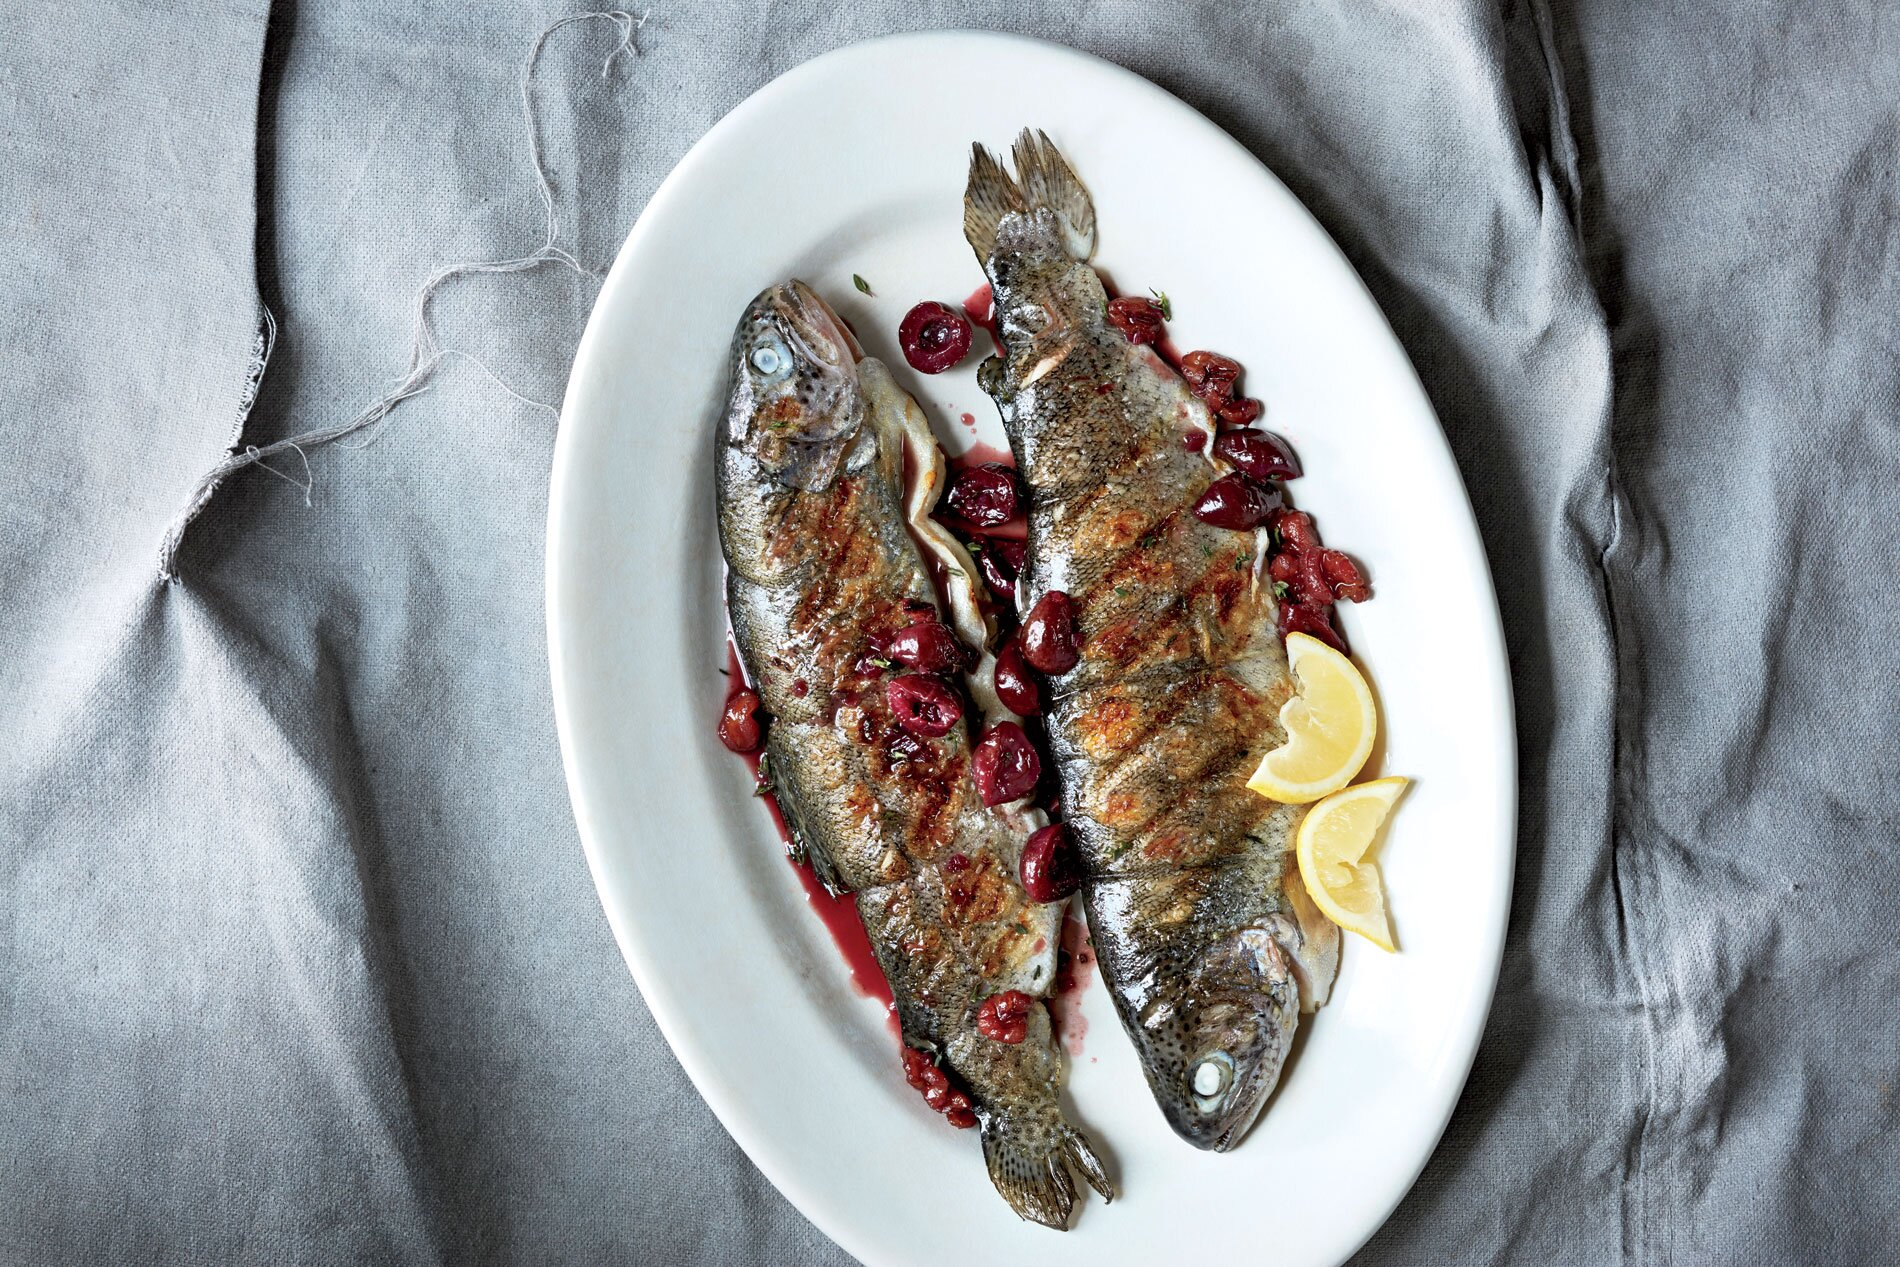 Grilled Striped Bass Recipes Barefoot Contessa our best recipes for grilled fish | myrecipes